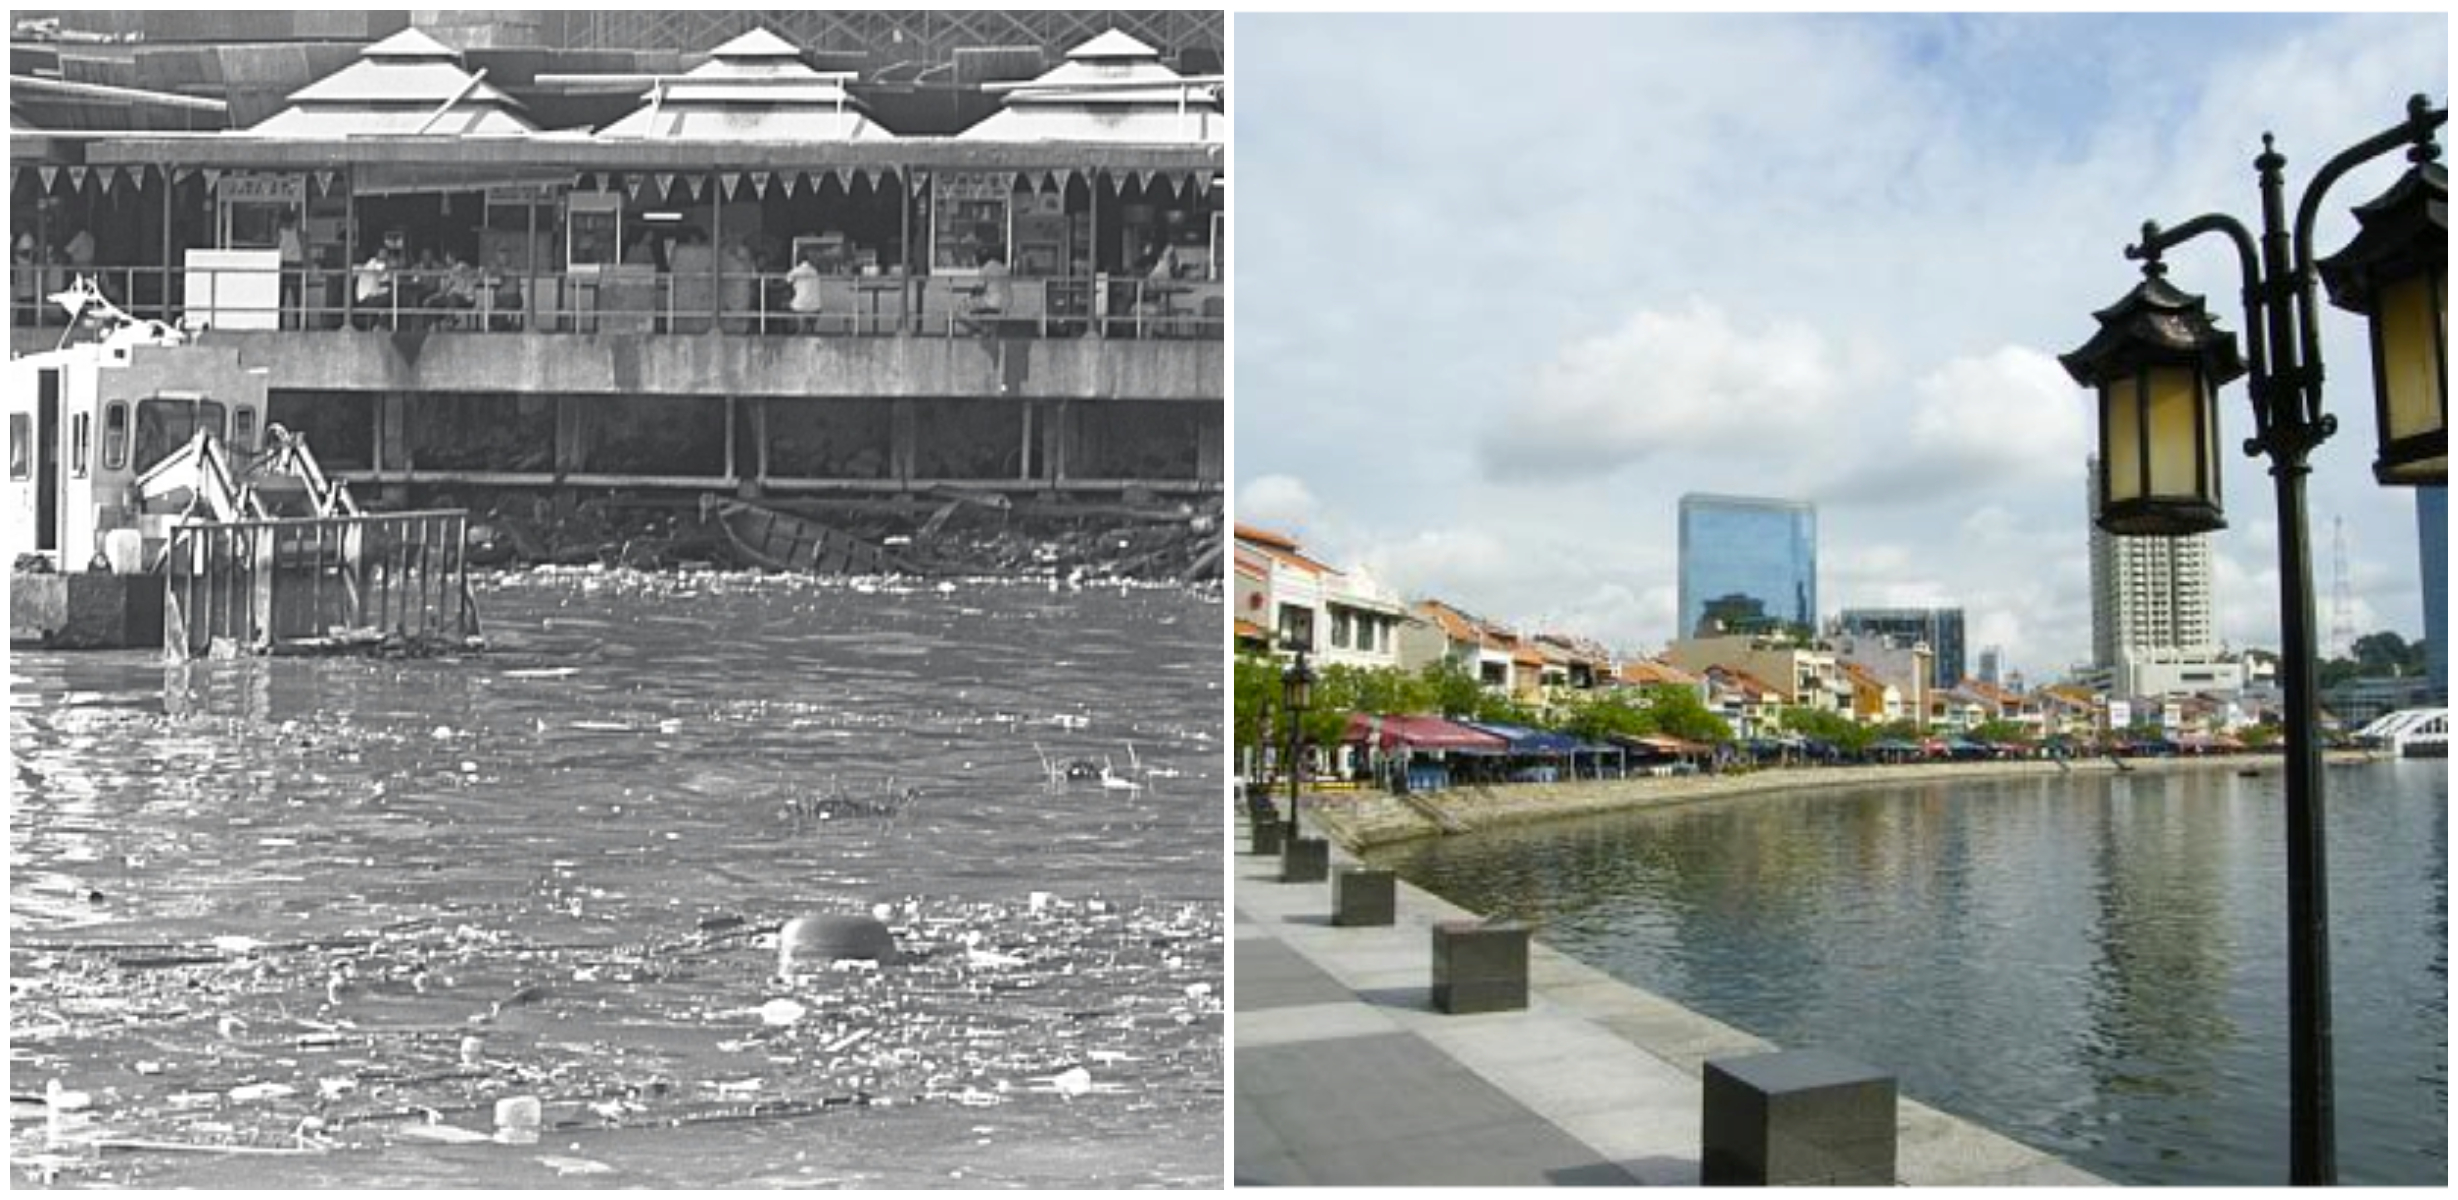 Singapore river before (left) and after the clean up. Images from Straits Times and ssa1207photoessay.wordpress.com